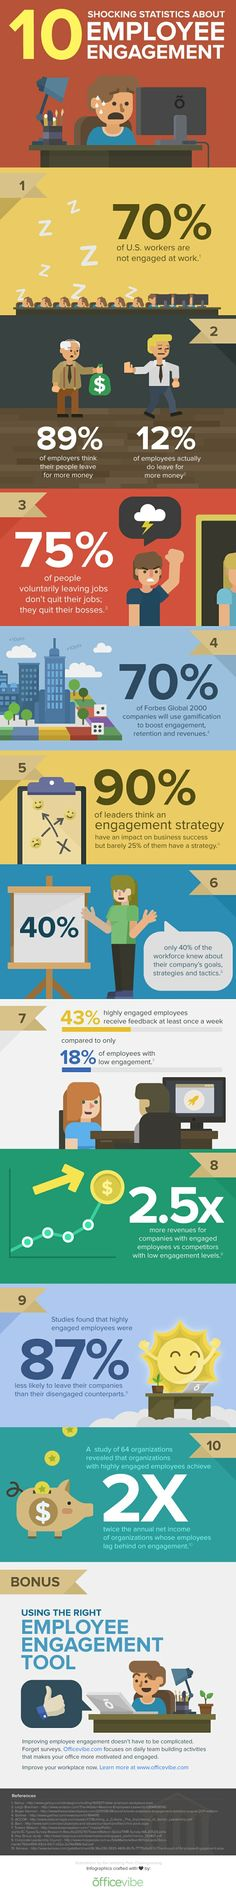 So what was the reason for leaving your previous job? 10 Shocking Statistics About Employee Engagement Infographic